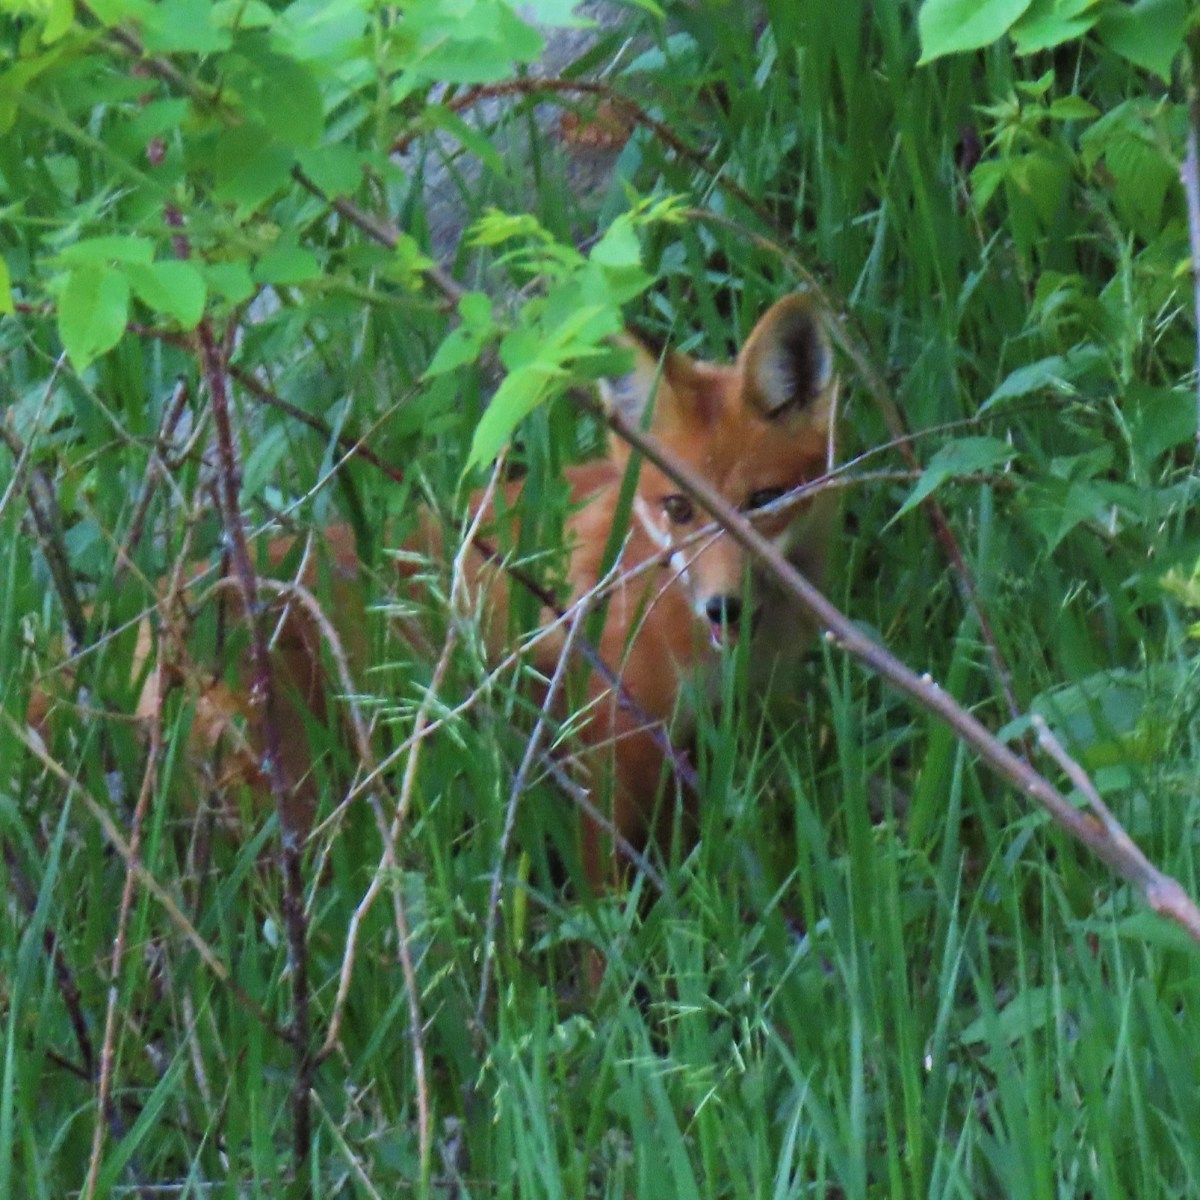 A red fox stands in tall grass with its head turned sideways toward the camera